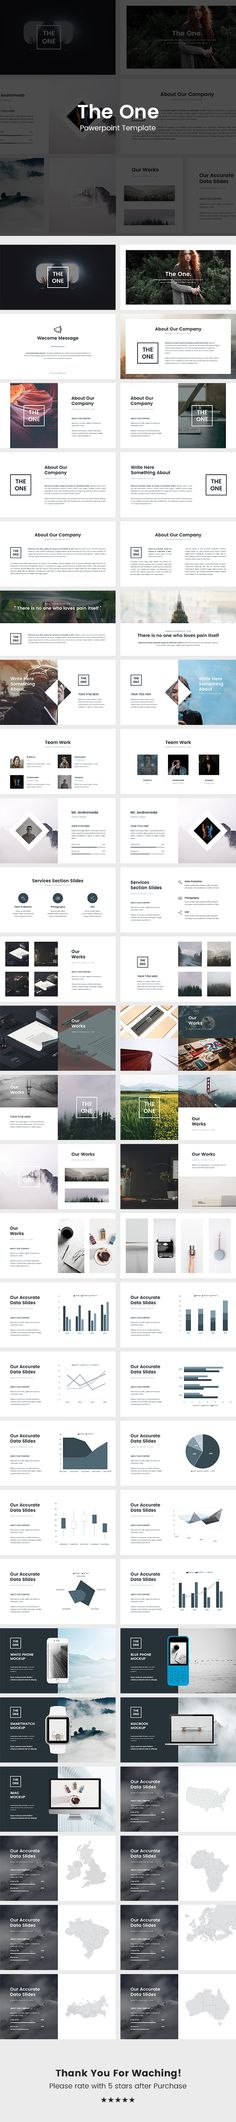 The One  Powerpoint Template  #white #fashion • Download ➝ https://graphicriver.net/item/the-one-powerpoint-template/18581474?ref=pxcr